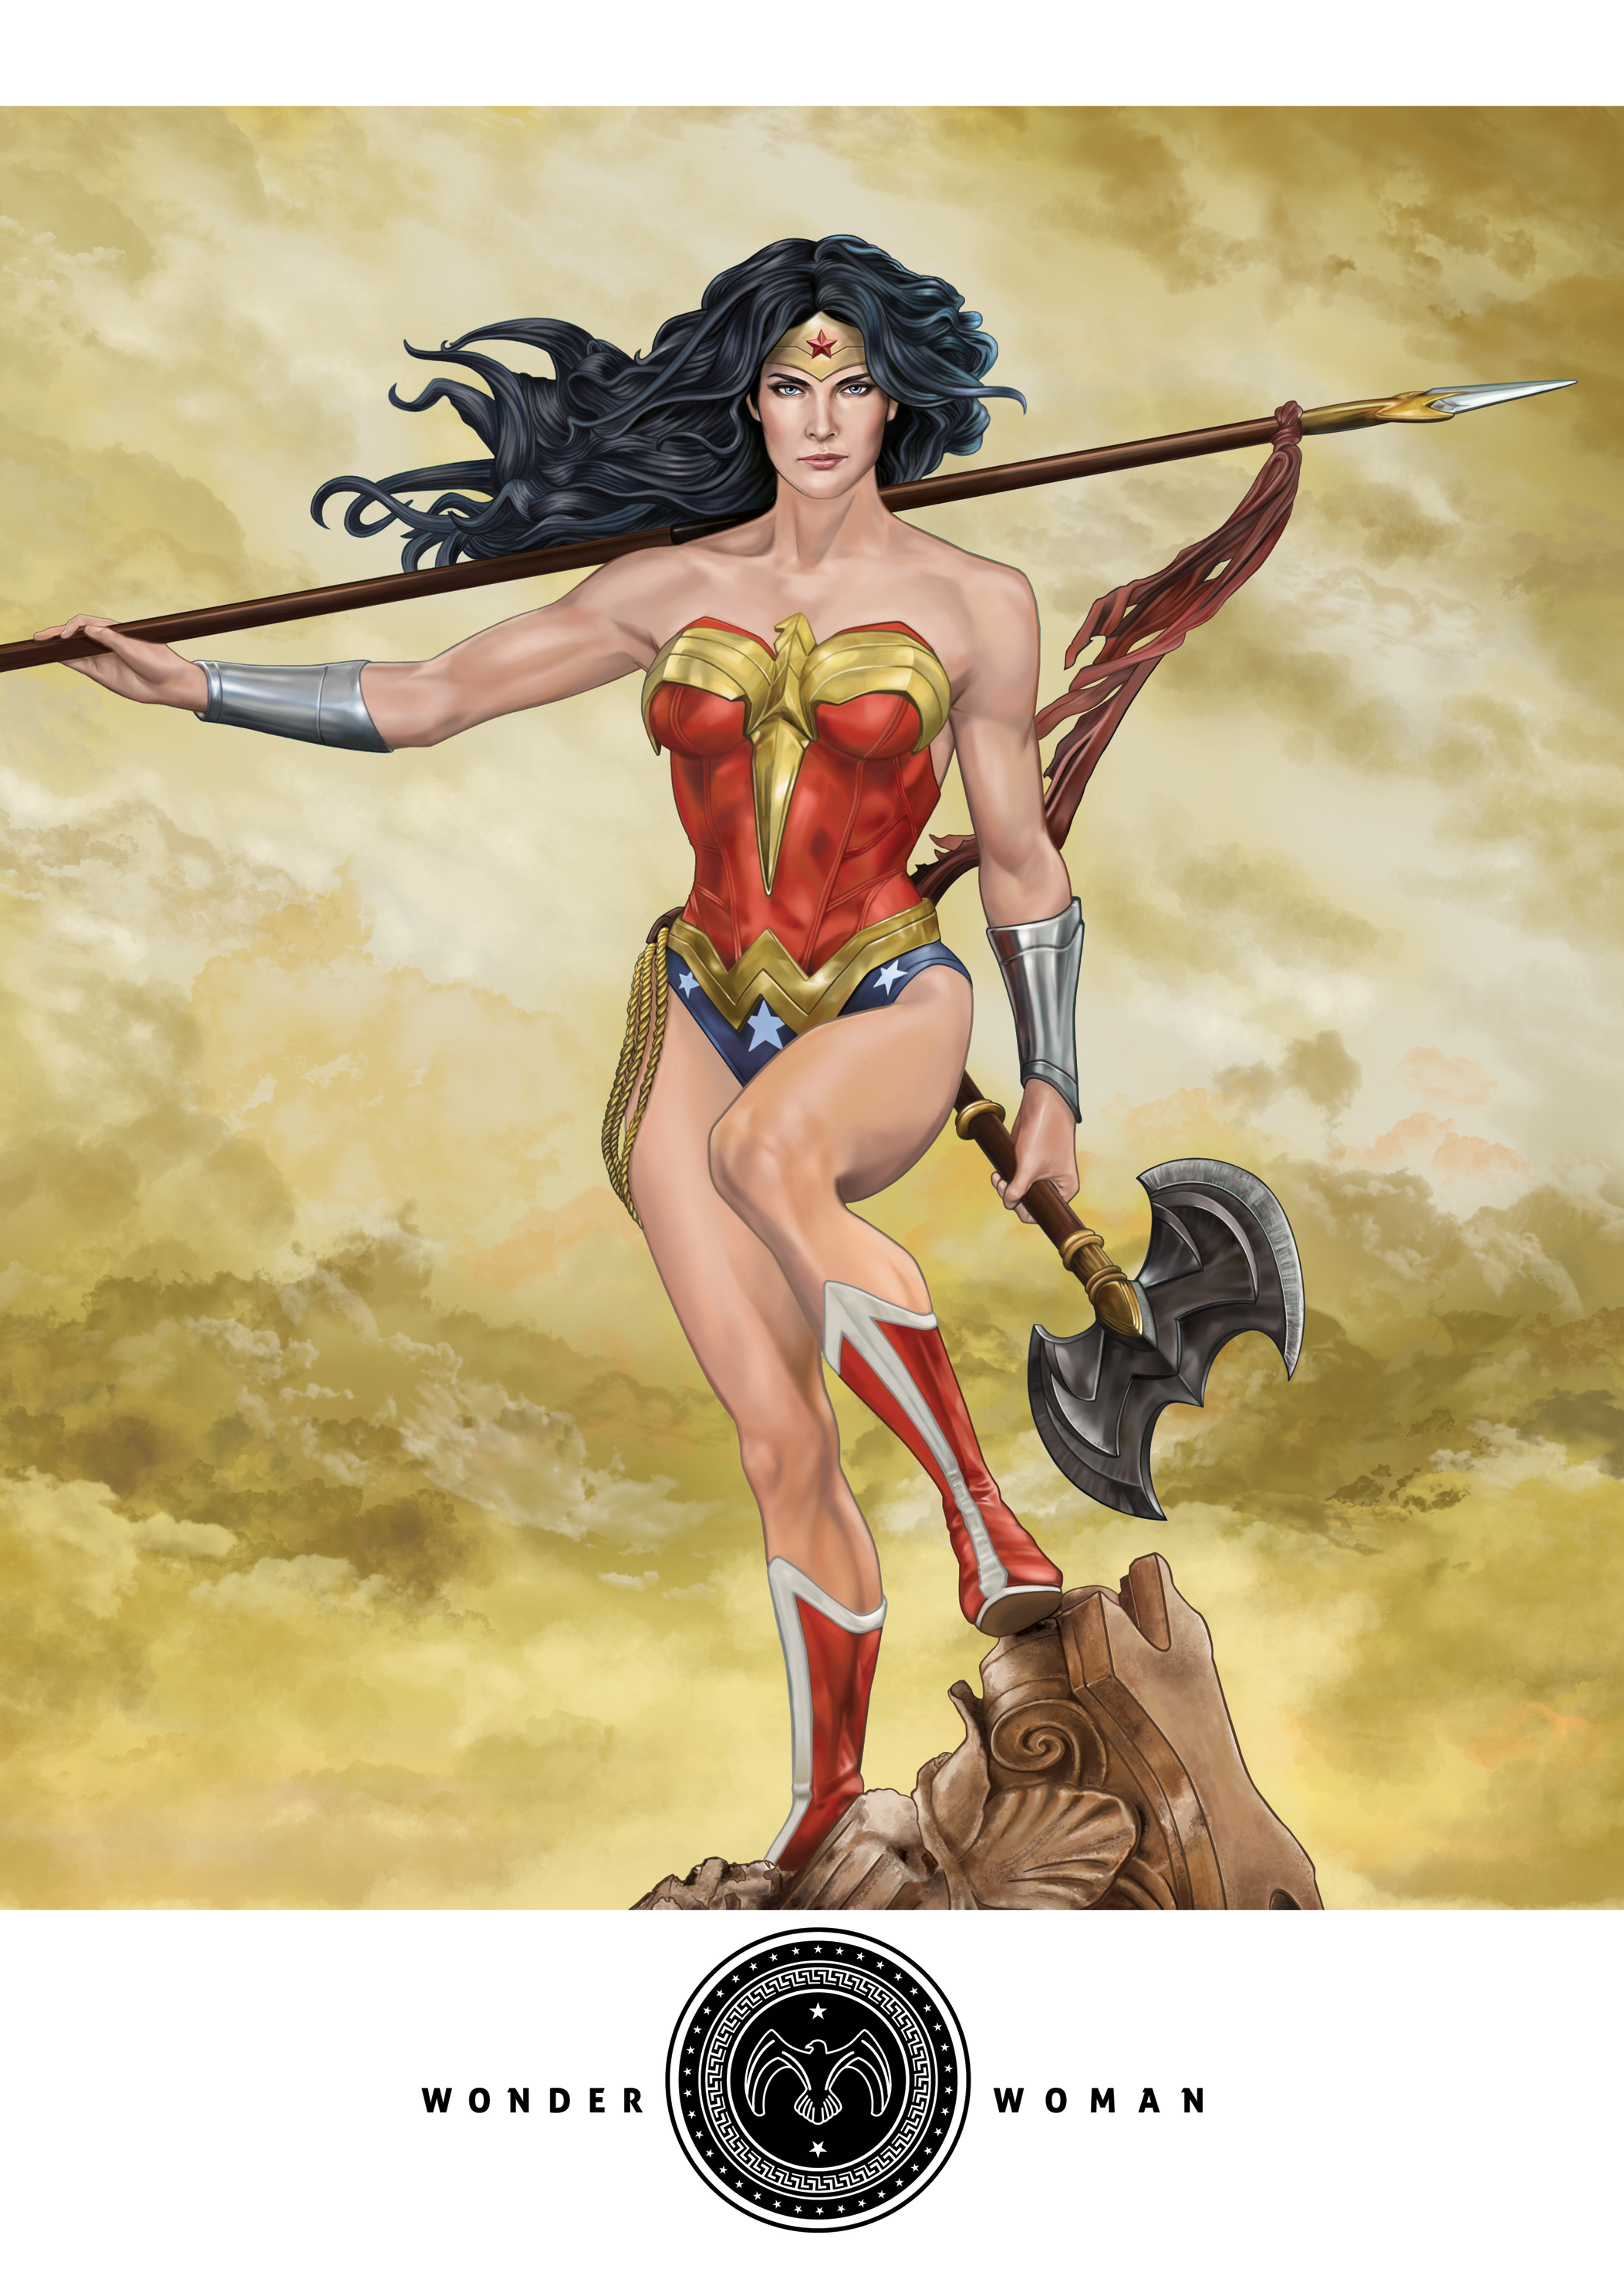 This is the actual way I envisioned my Wonder Woman print to be. Including the shield as a logo. With such a designer-esque layout, it becomes more premium & classy. An alternate version with left arm holding the shield instead of the axe will be done tonight after dinner. For Themyscira!!! Based on Sideshow Collectibles Wonder Woman PF Statue.